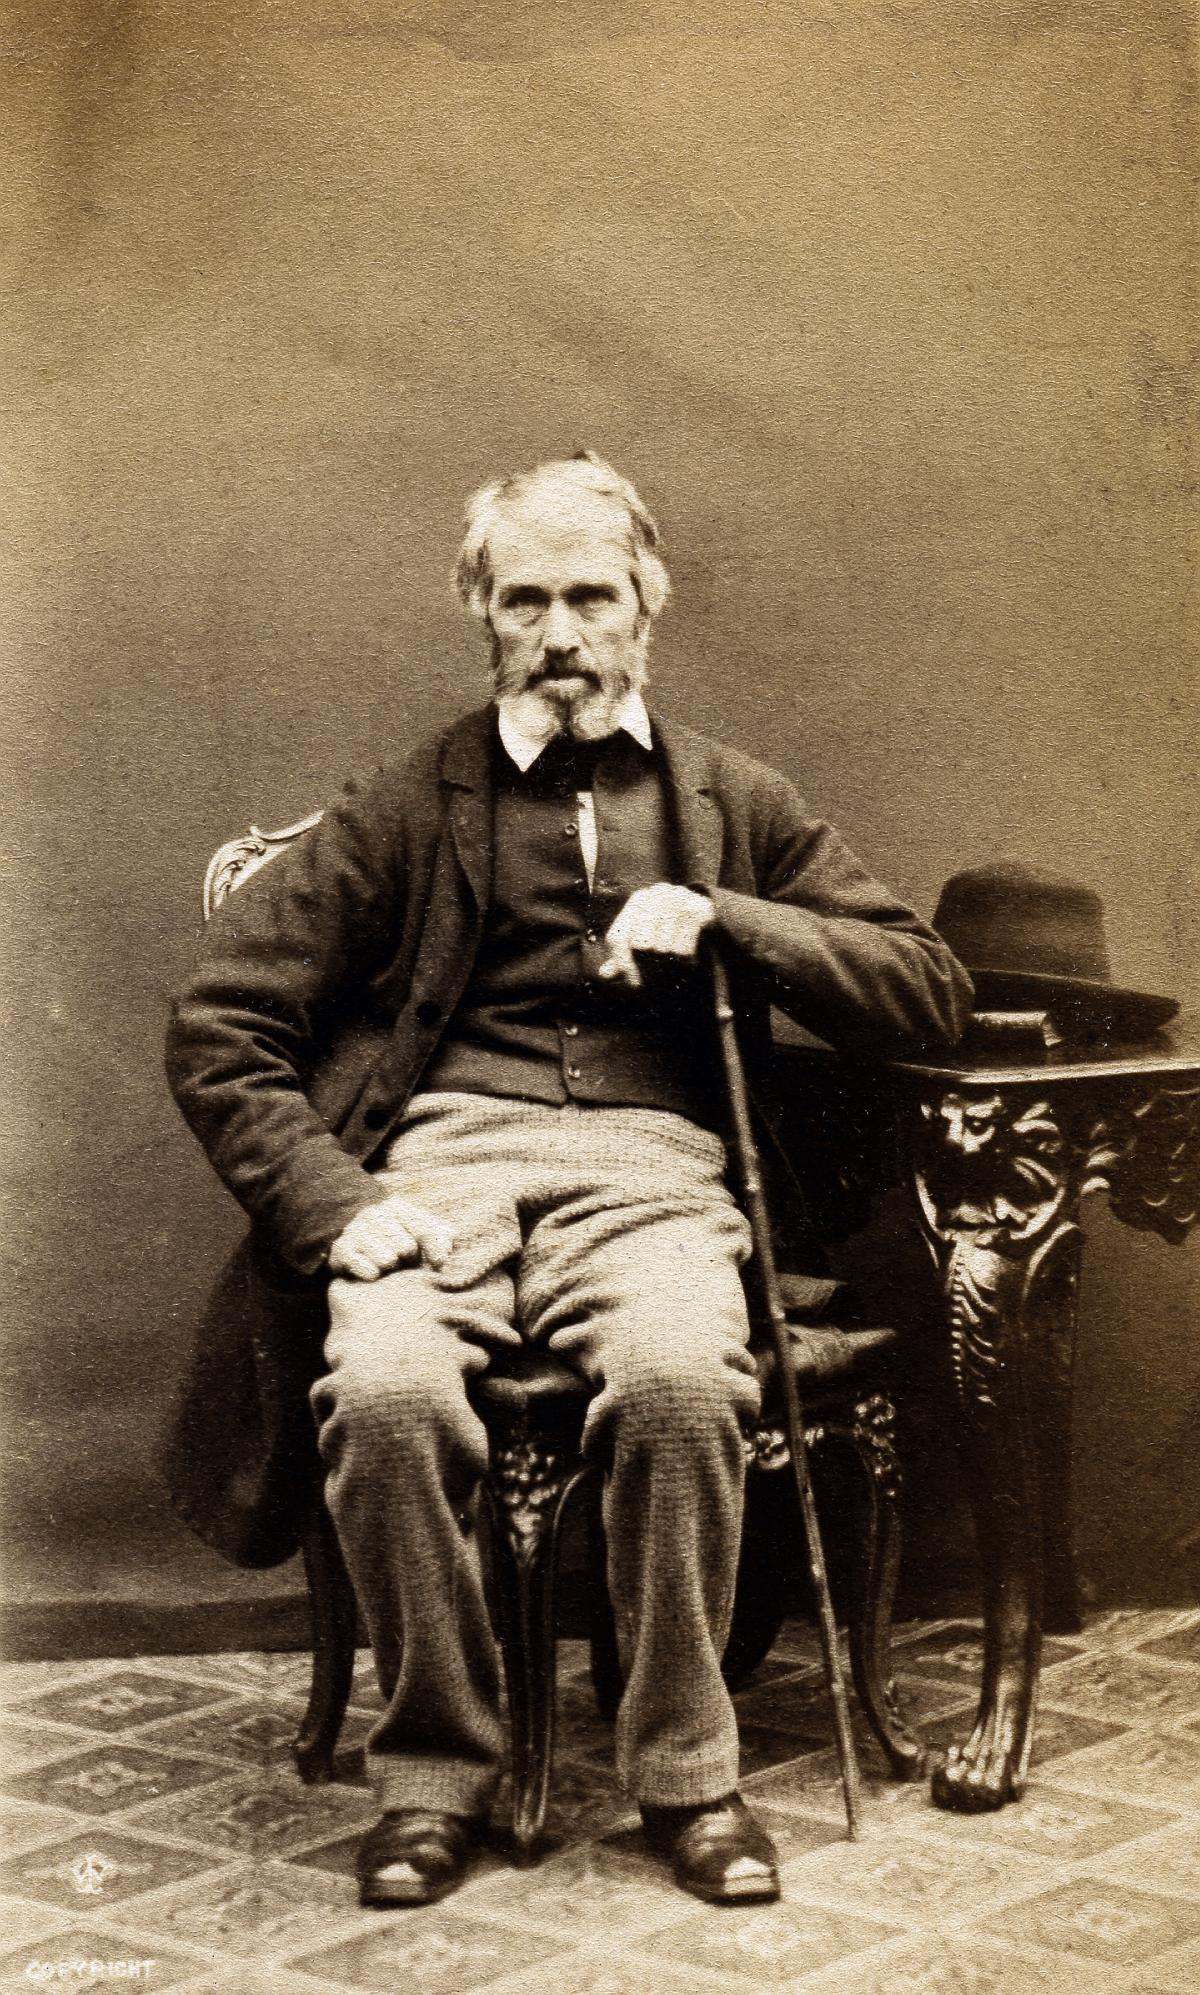 Carlyle sits, resting his left forearm on a walking stick, dressed in grey trousers and a dark coat, his hat sitting on a side table on his left